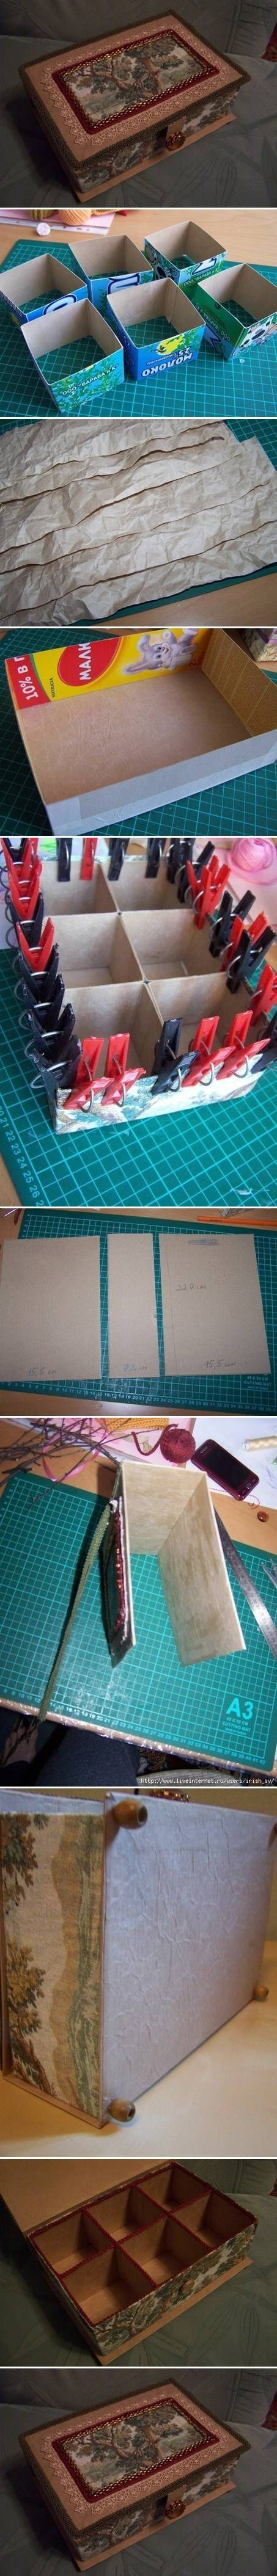 DIY Cardboard Organizer Box Pictures, Photos, and Images for Facebook, Tumblr, Pinterest, and Twitter